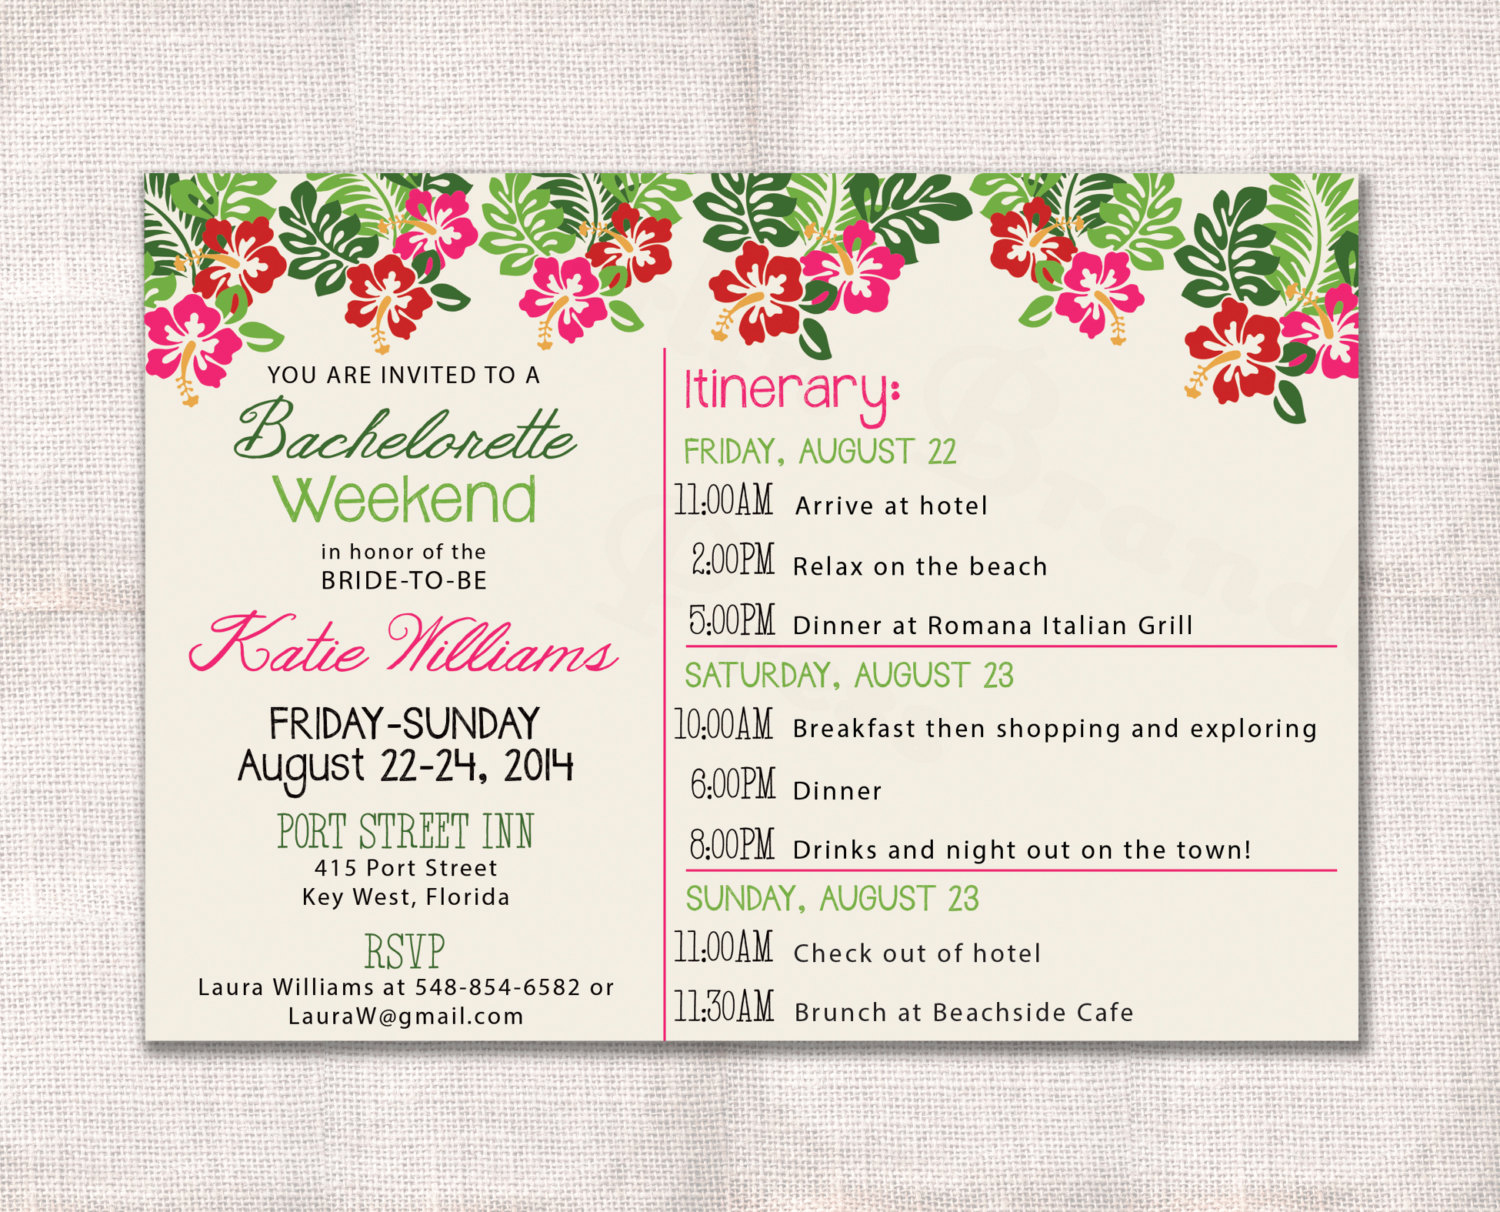 Bachelorette Party Itinerary Template Best Of Bachelorette Party Weekend Invitation and Itinerary Custom